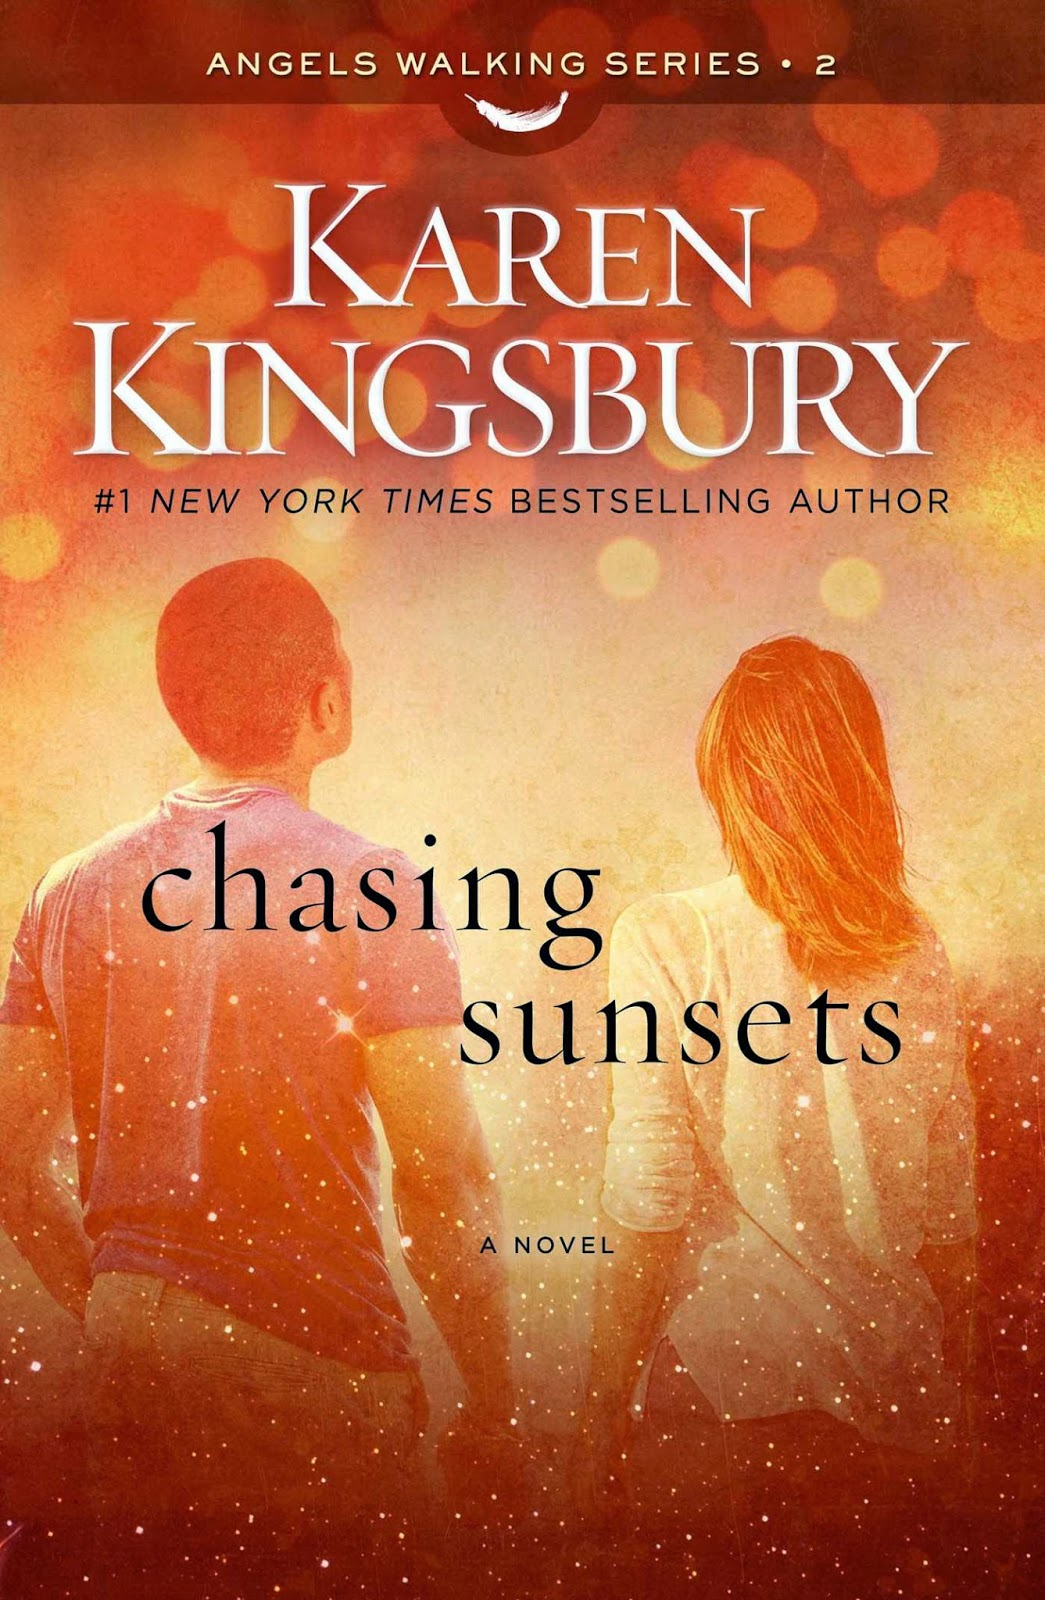 Chasing Sunsets (Angels Walking, Book 2) by Karen Kingsbury